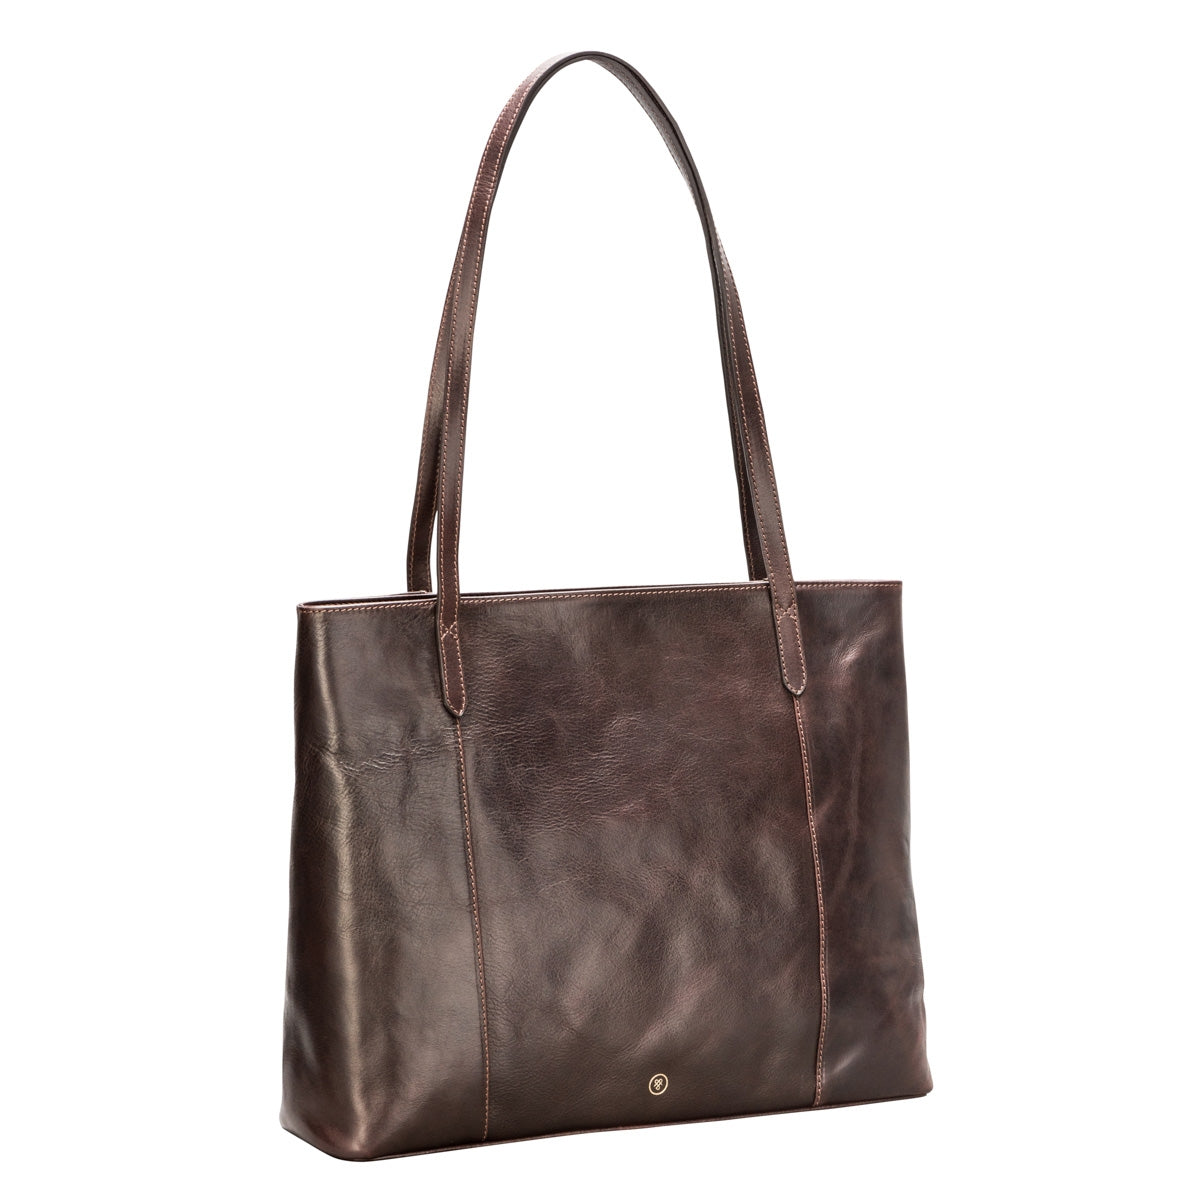 Image 2 of the 'Athenea' Dark Chocolate Veg-Tanned Leather Shopper